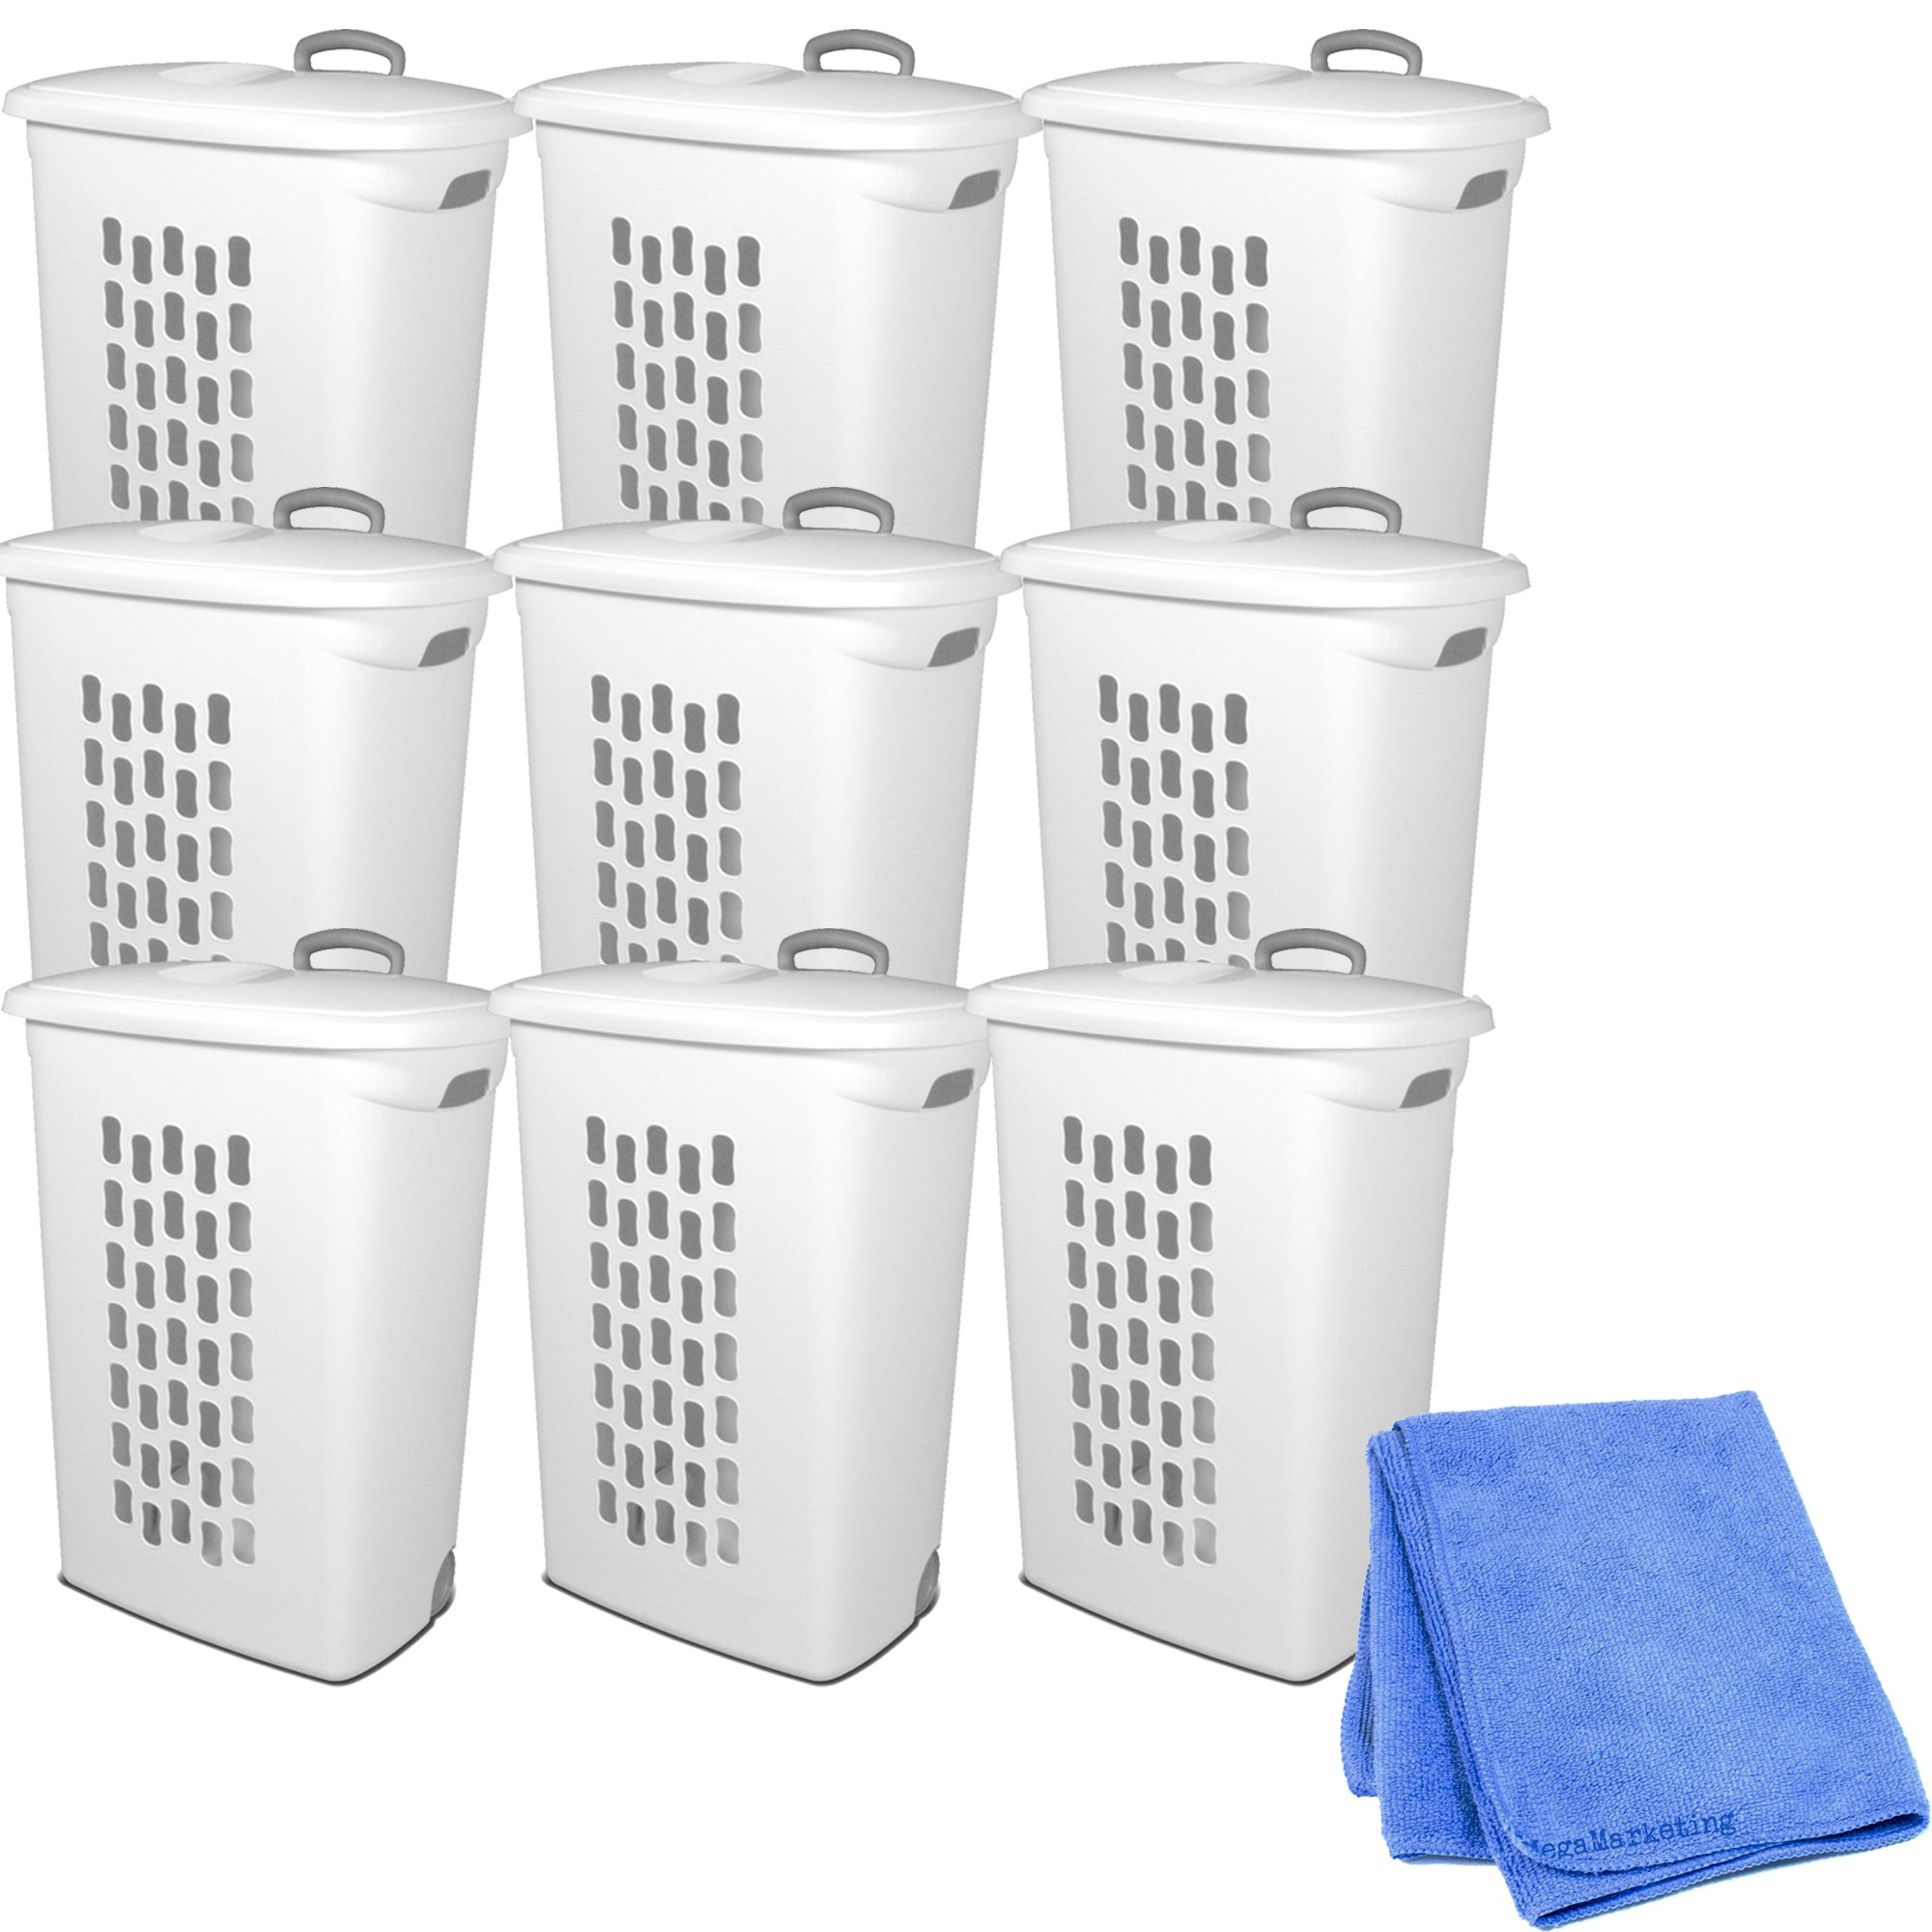 Sterilite 12228003 Ultra Wheeled Hamper, White Lid & Base w/ Titanium Handle & Wheels, 9-Pack with Cleaner Cloth by STÉRILITE